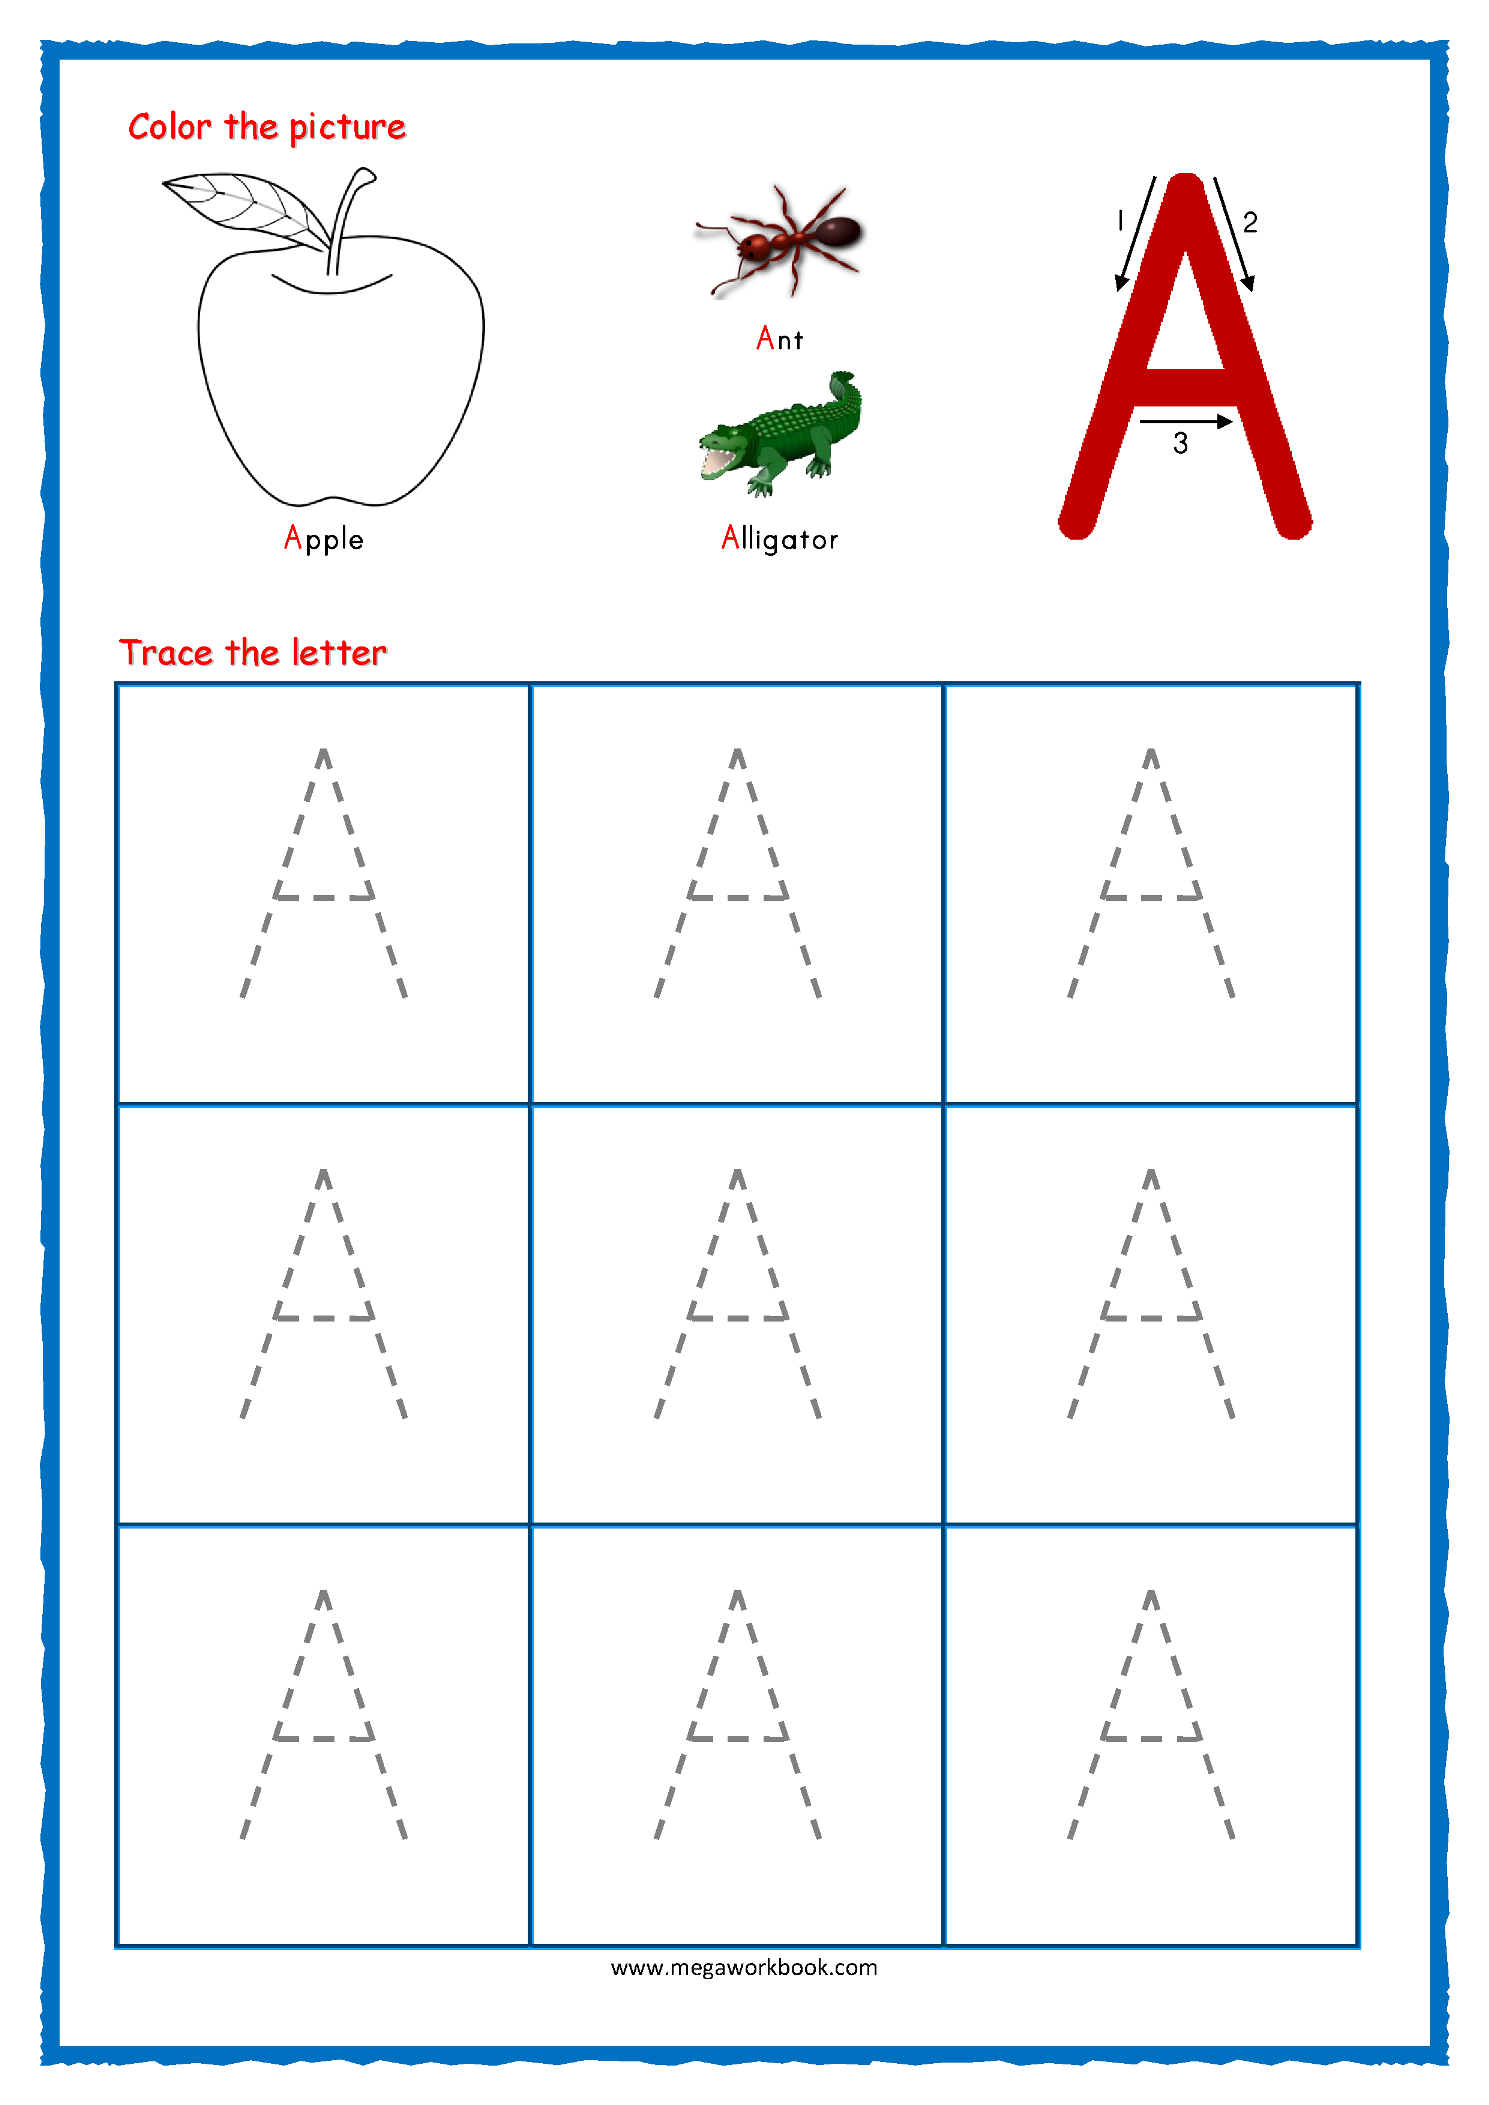 Tracing Letters - Alphabet Tracing - Capital Letters regarding Letter Tracing Kindergarten